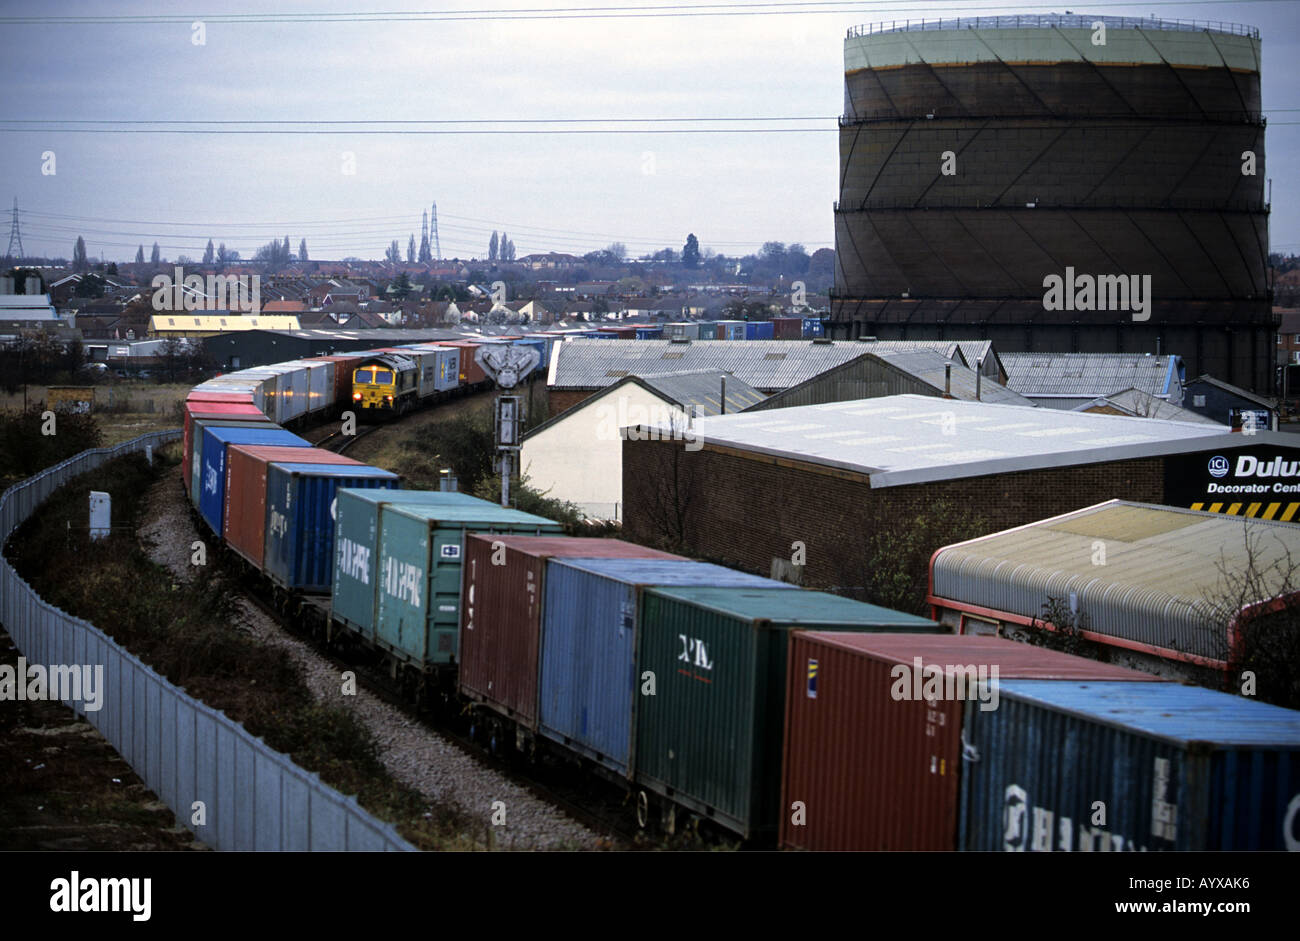 Frieight trains on a passing loop in Ipswich on the branch line to the port of Felixstowe, Suffolk, UK. - Stock Image